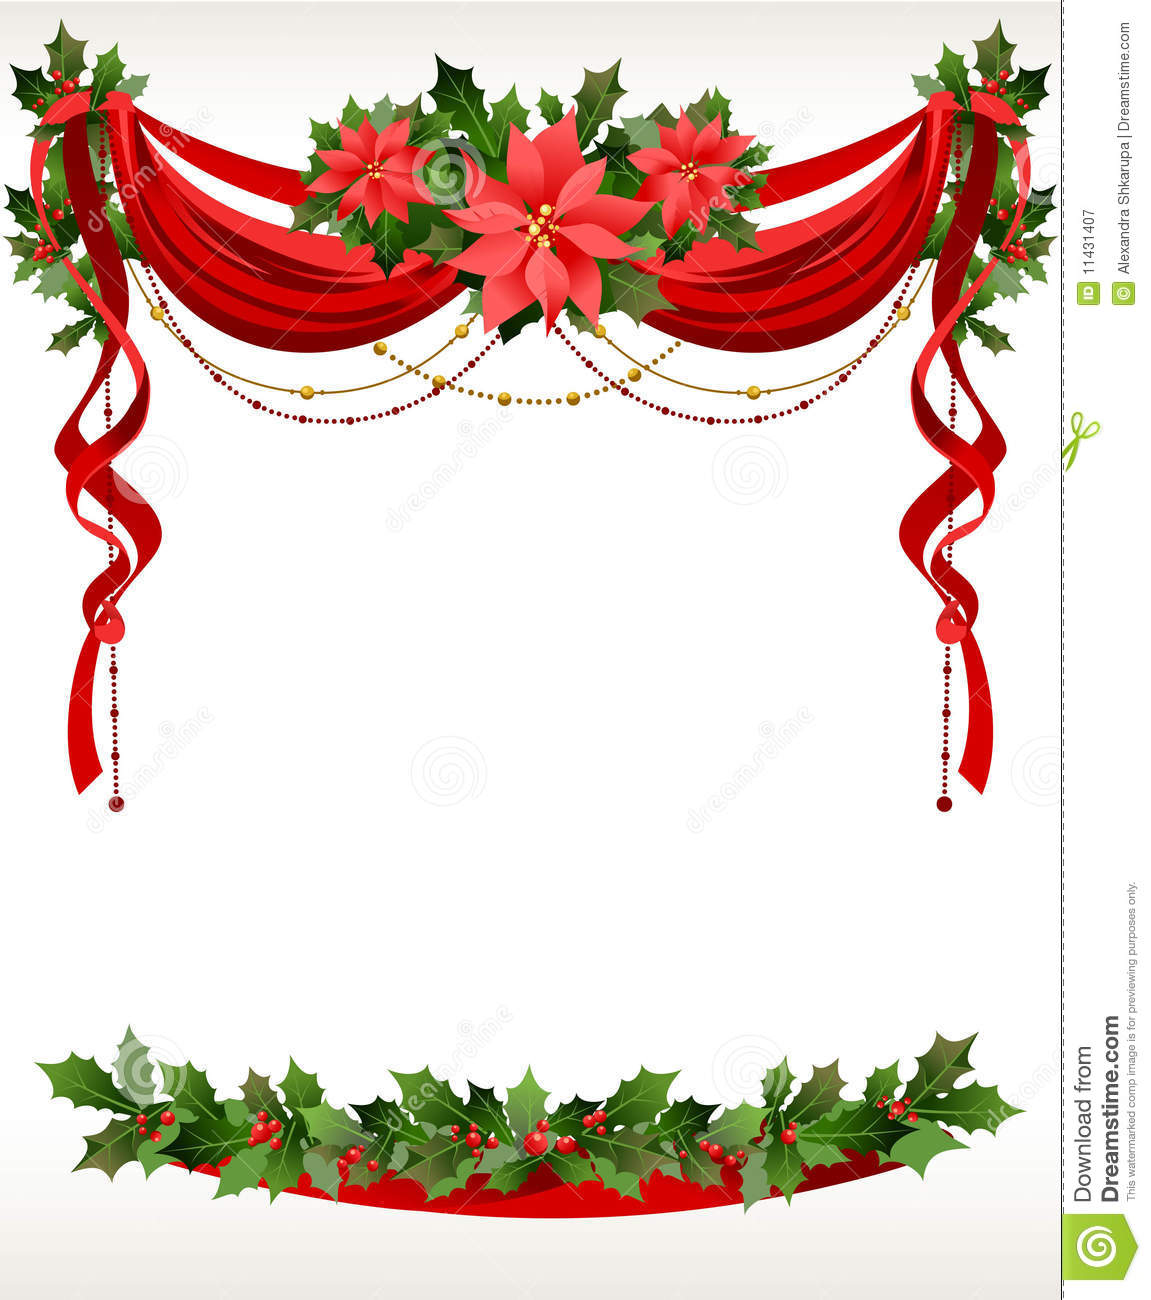 Christmas Picture Frame Clip Art-christmas picture frame clip art-2